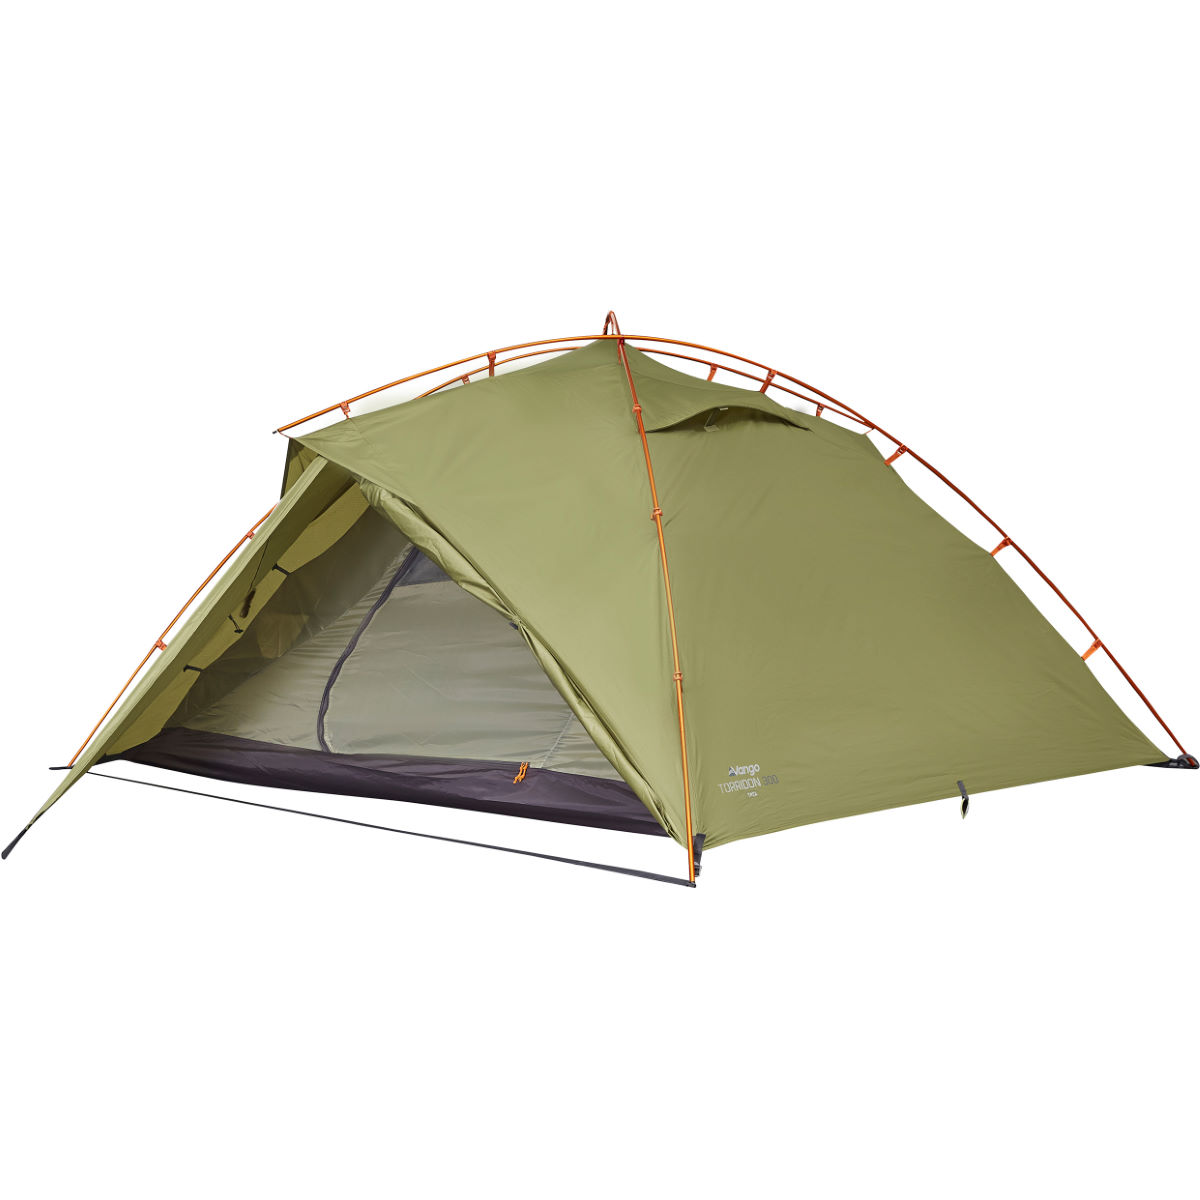 Vango Vango Torridon 300 Three Person Tent   Tents